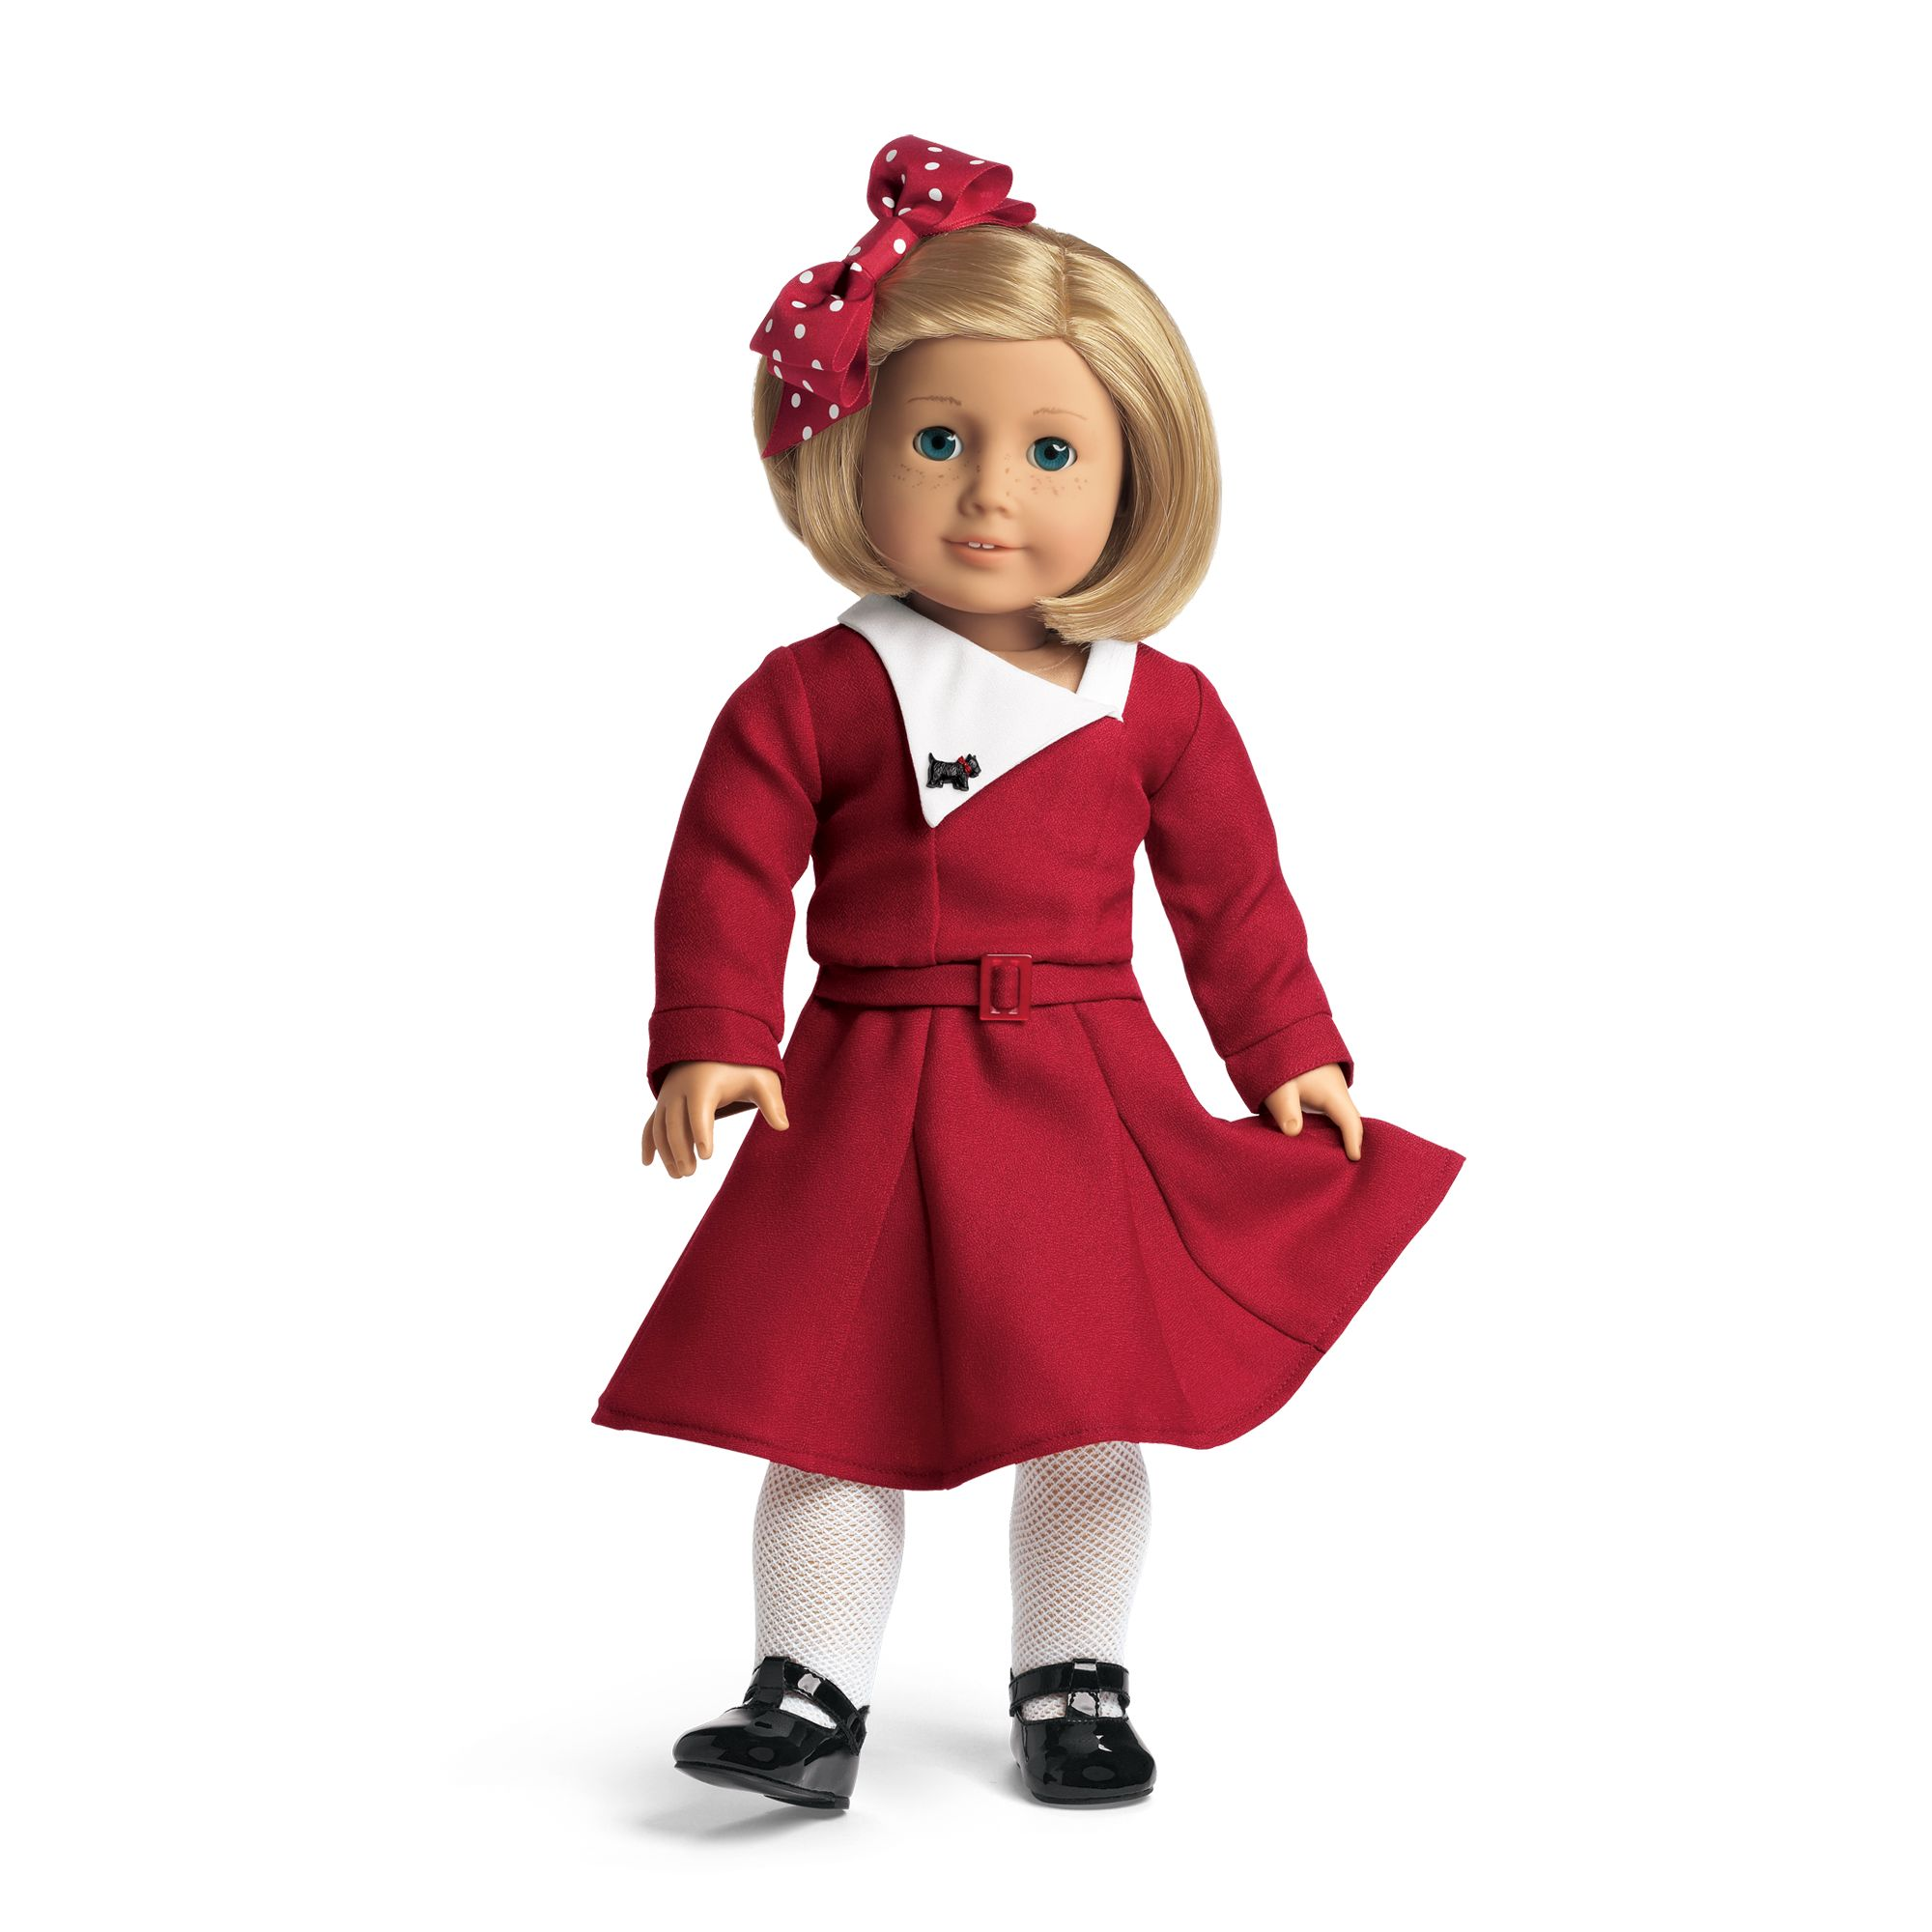 50c79e54db2 Christmas Outfit | American Girl Wiki | FANDOM powered by Wikia